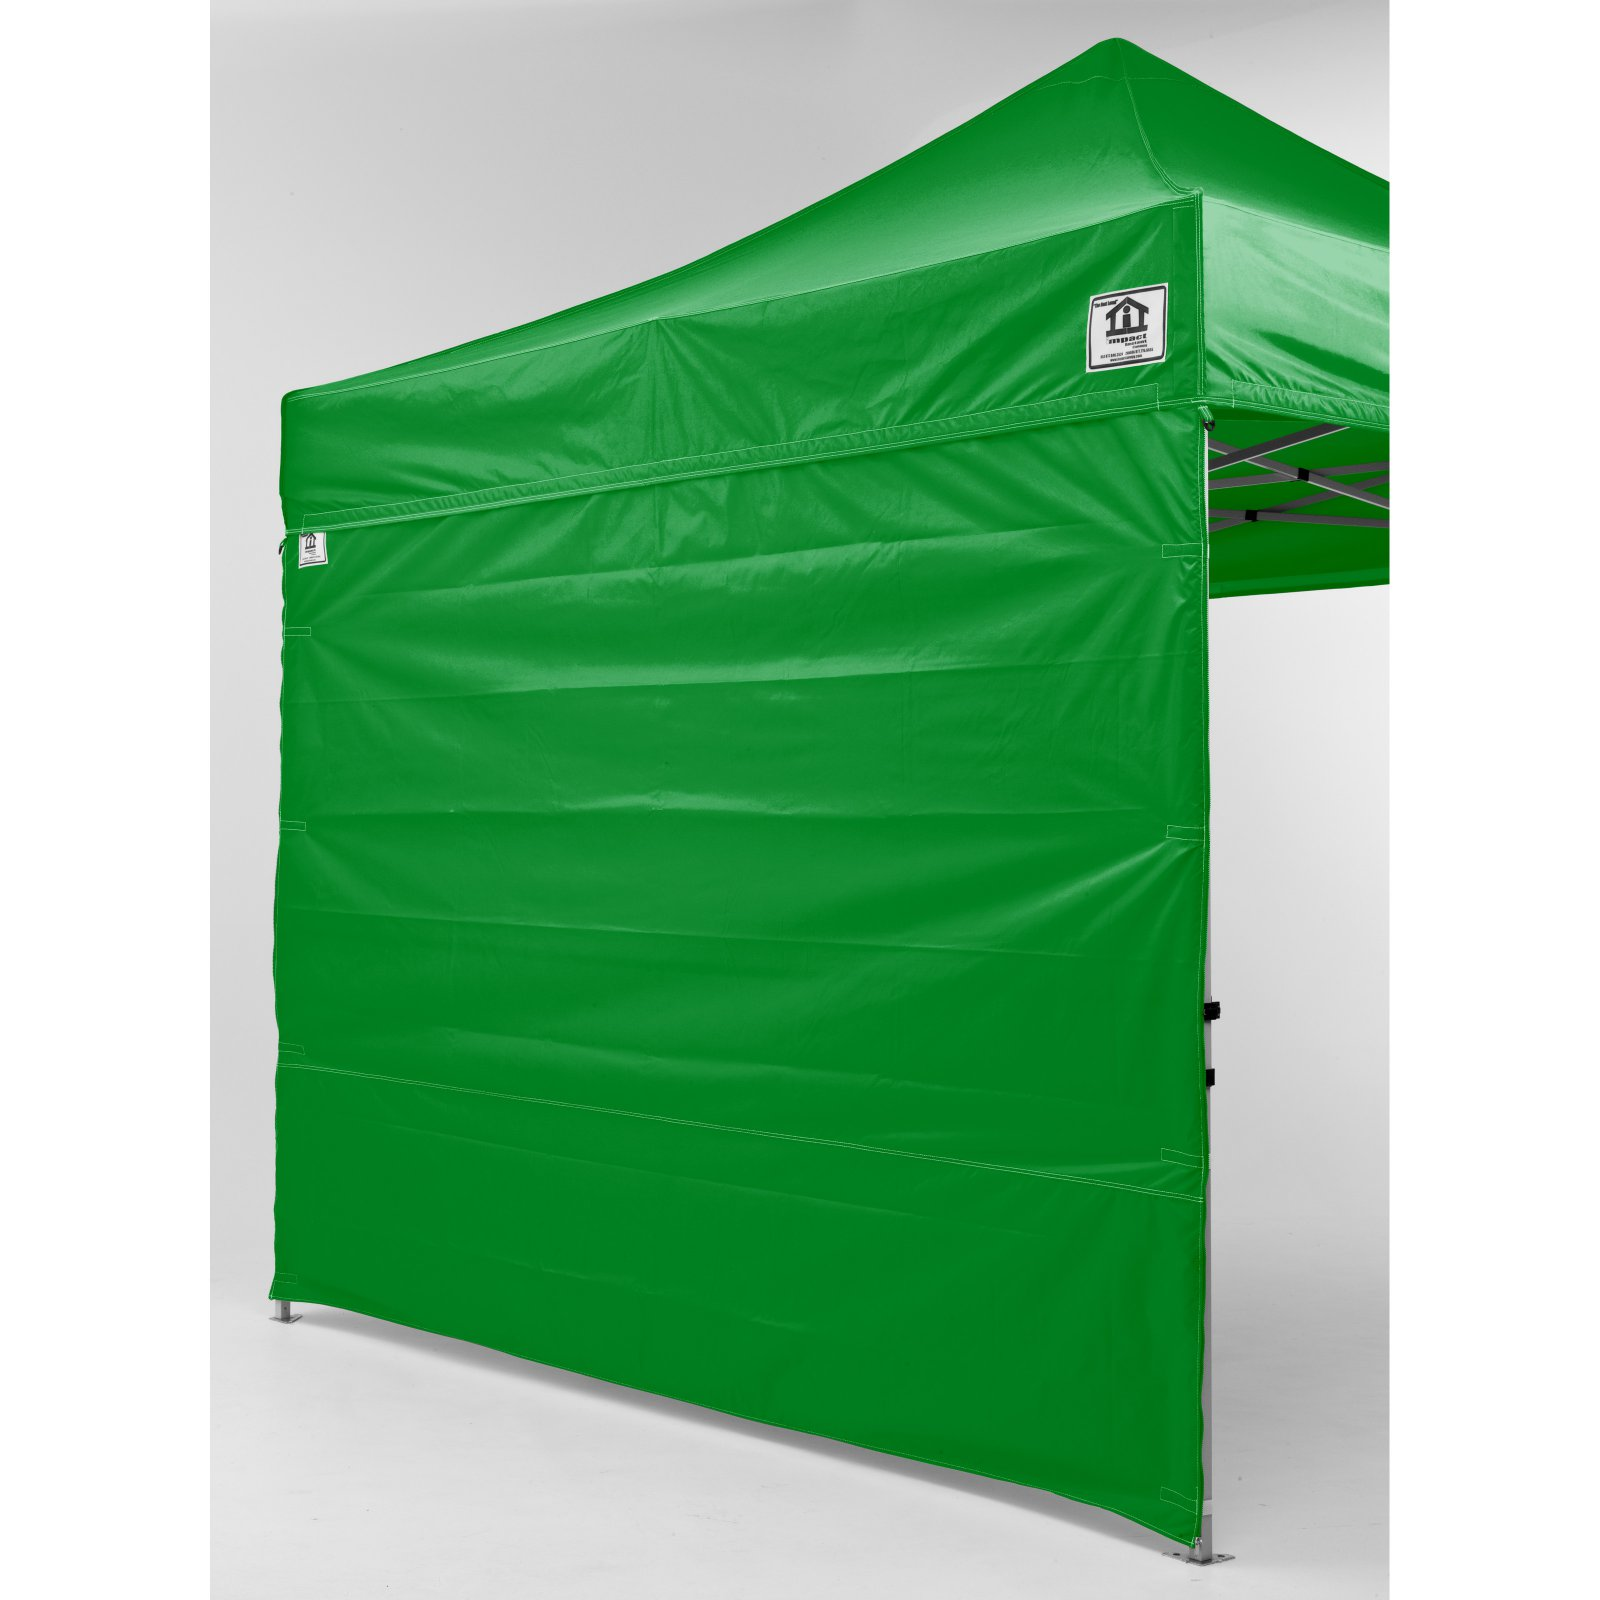 Impact Canopy 10 x 10 ft. EZ Pop Up Canopy with Sidewalls and Roller